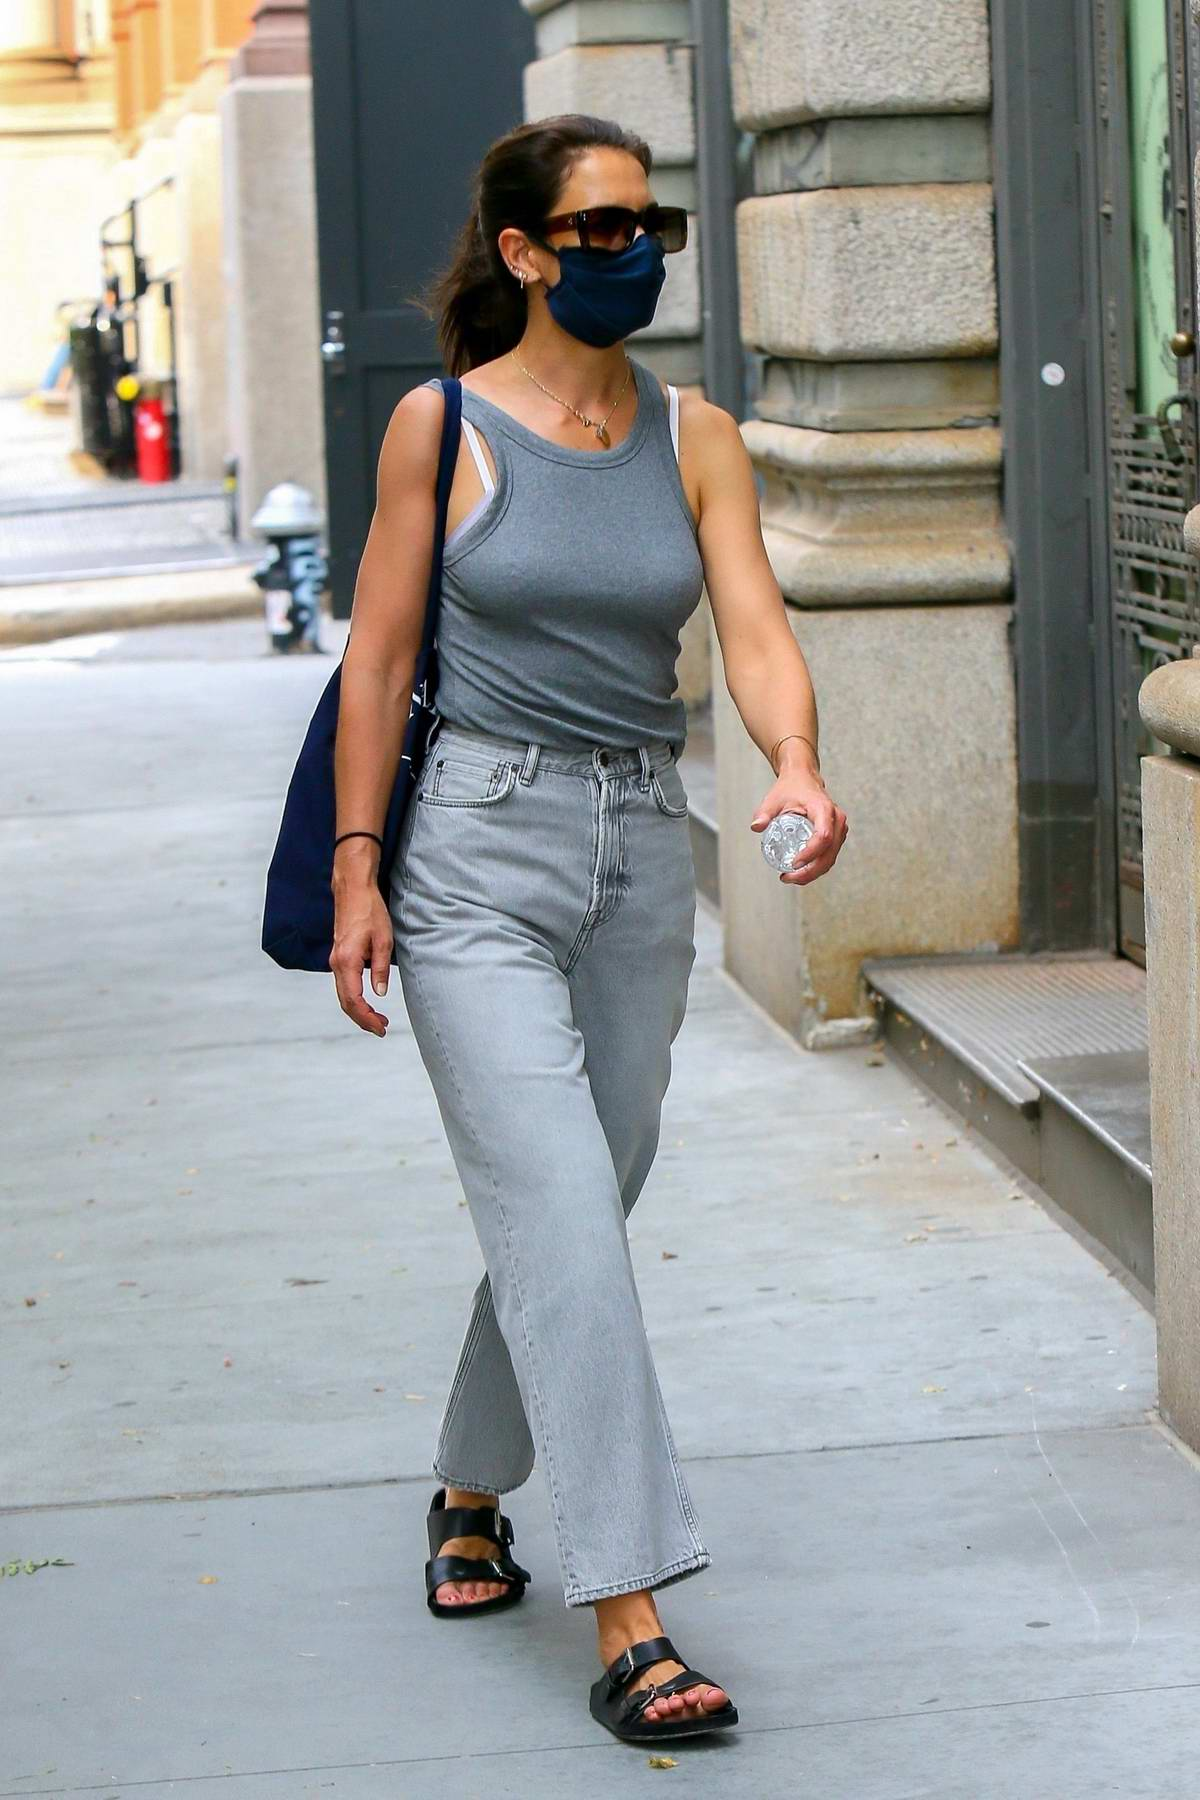 Katie Holmes wears grey tank top and jeans while out in New York City